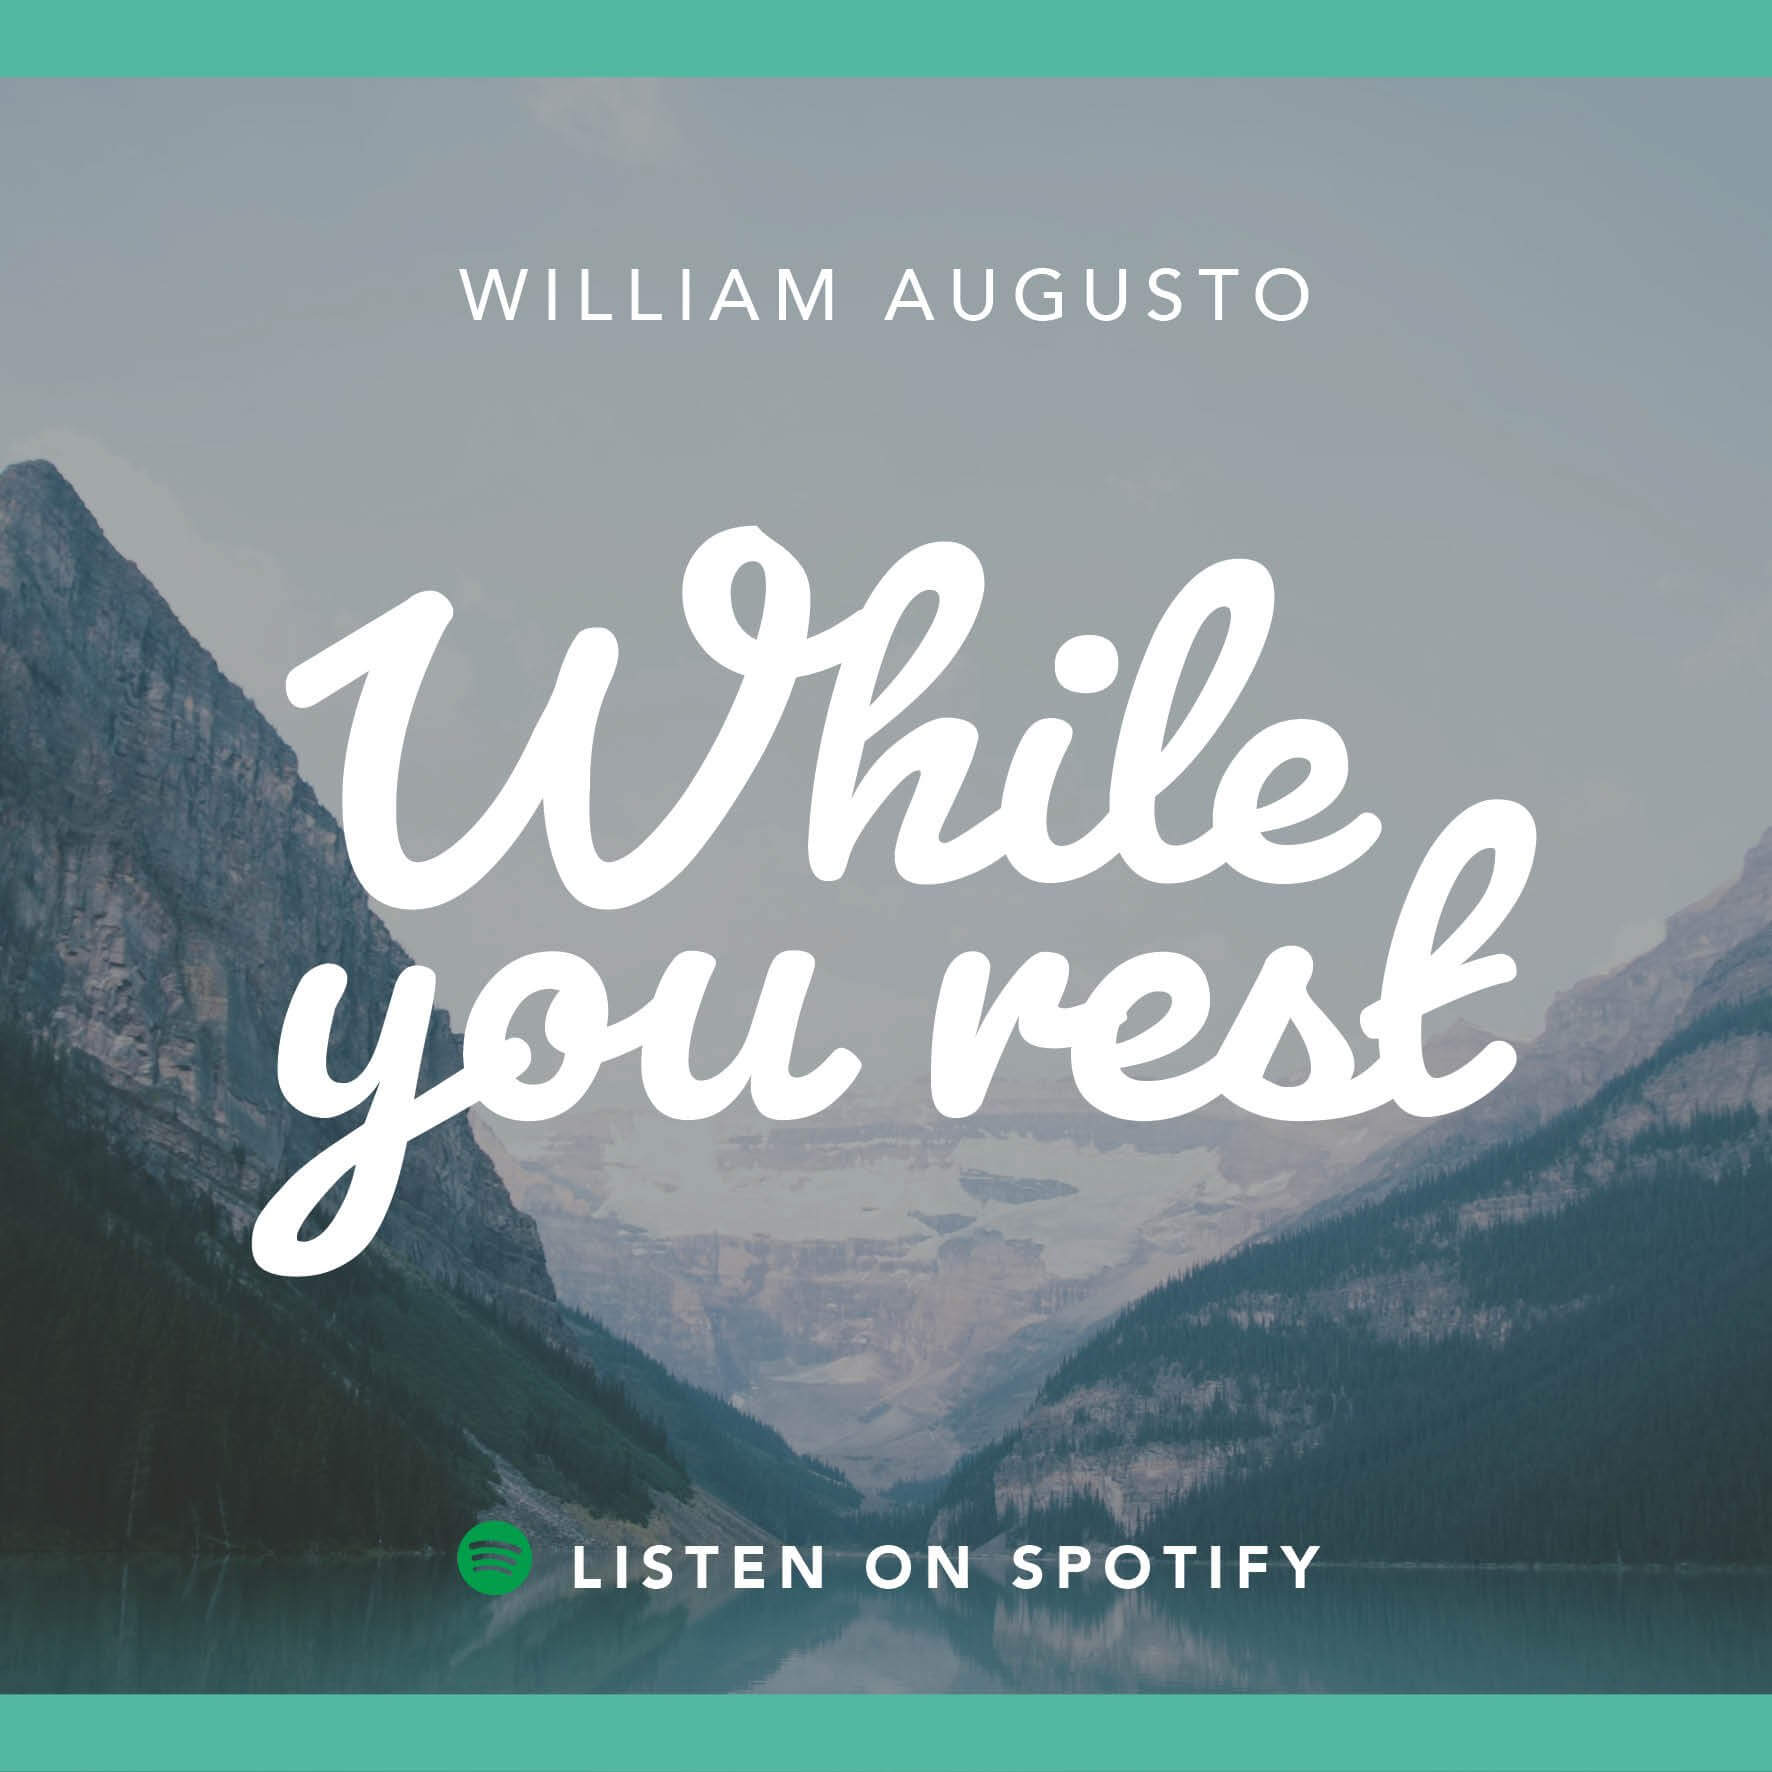 Listen on Spotify: William Augusto- while you rest